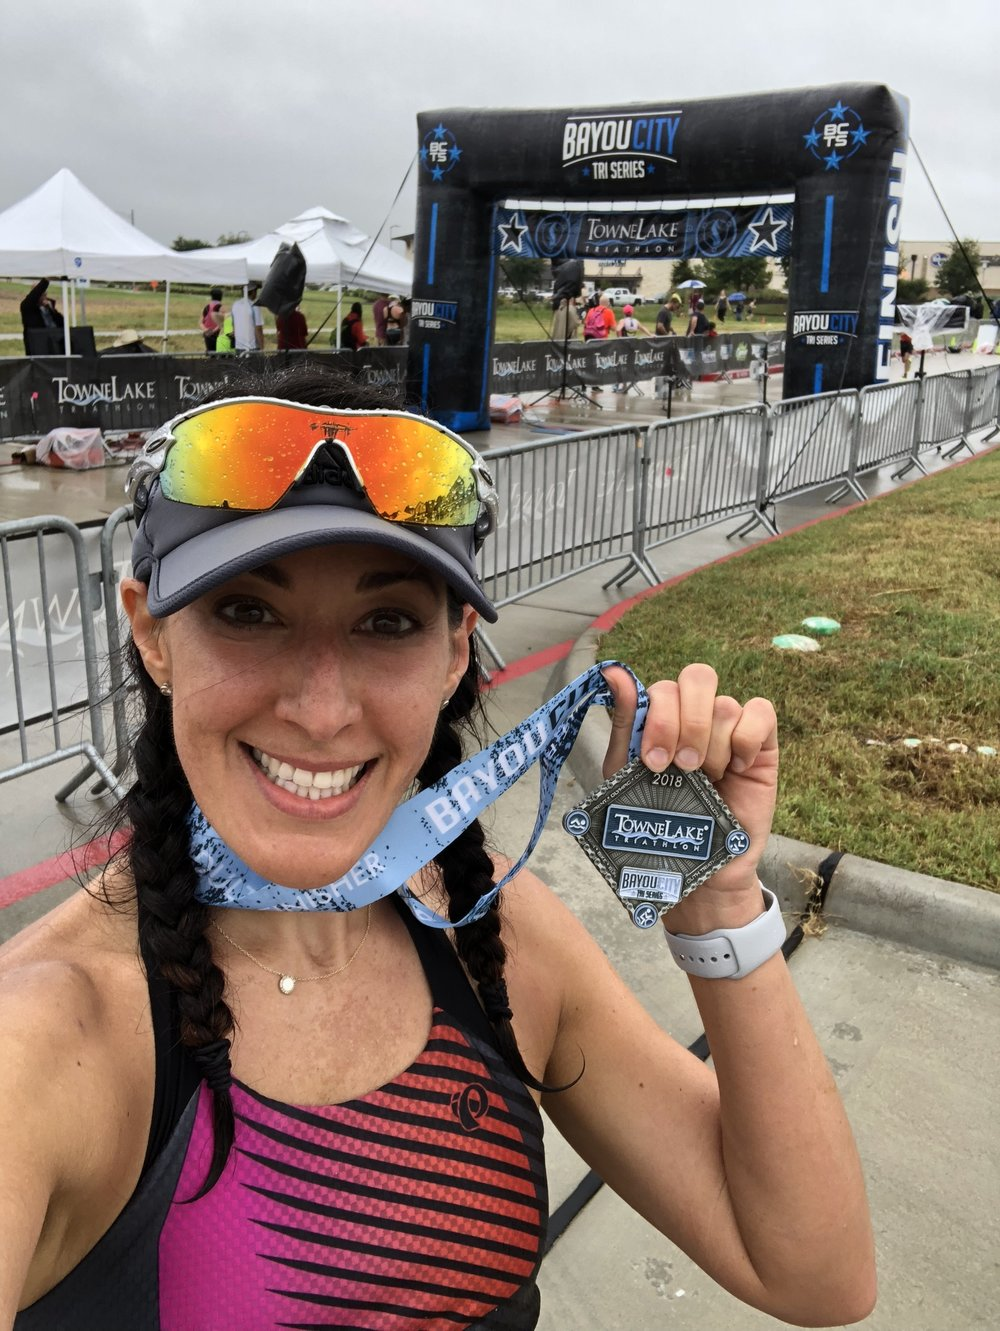 Post race selfie with my medal